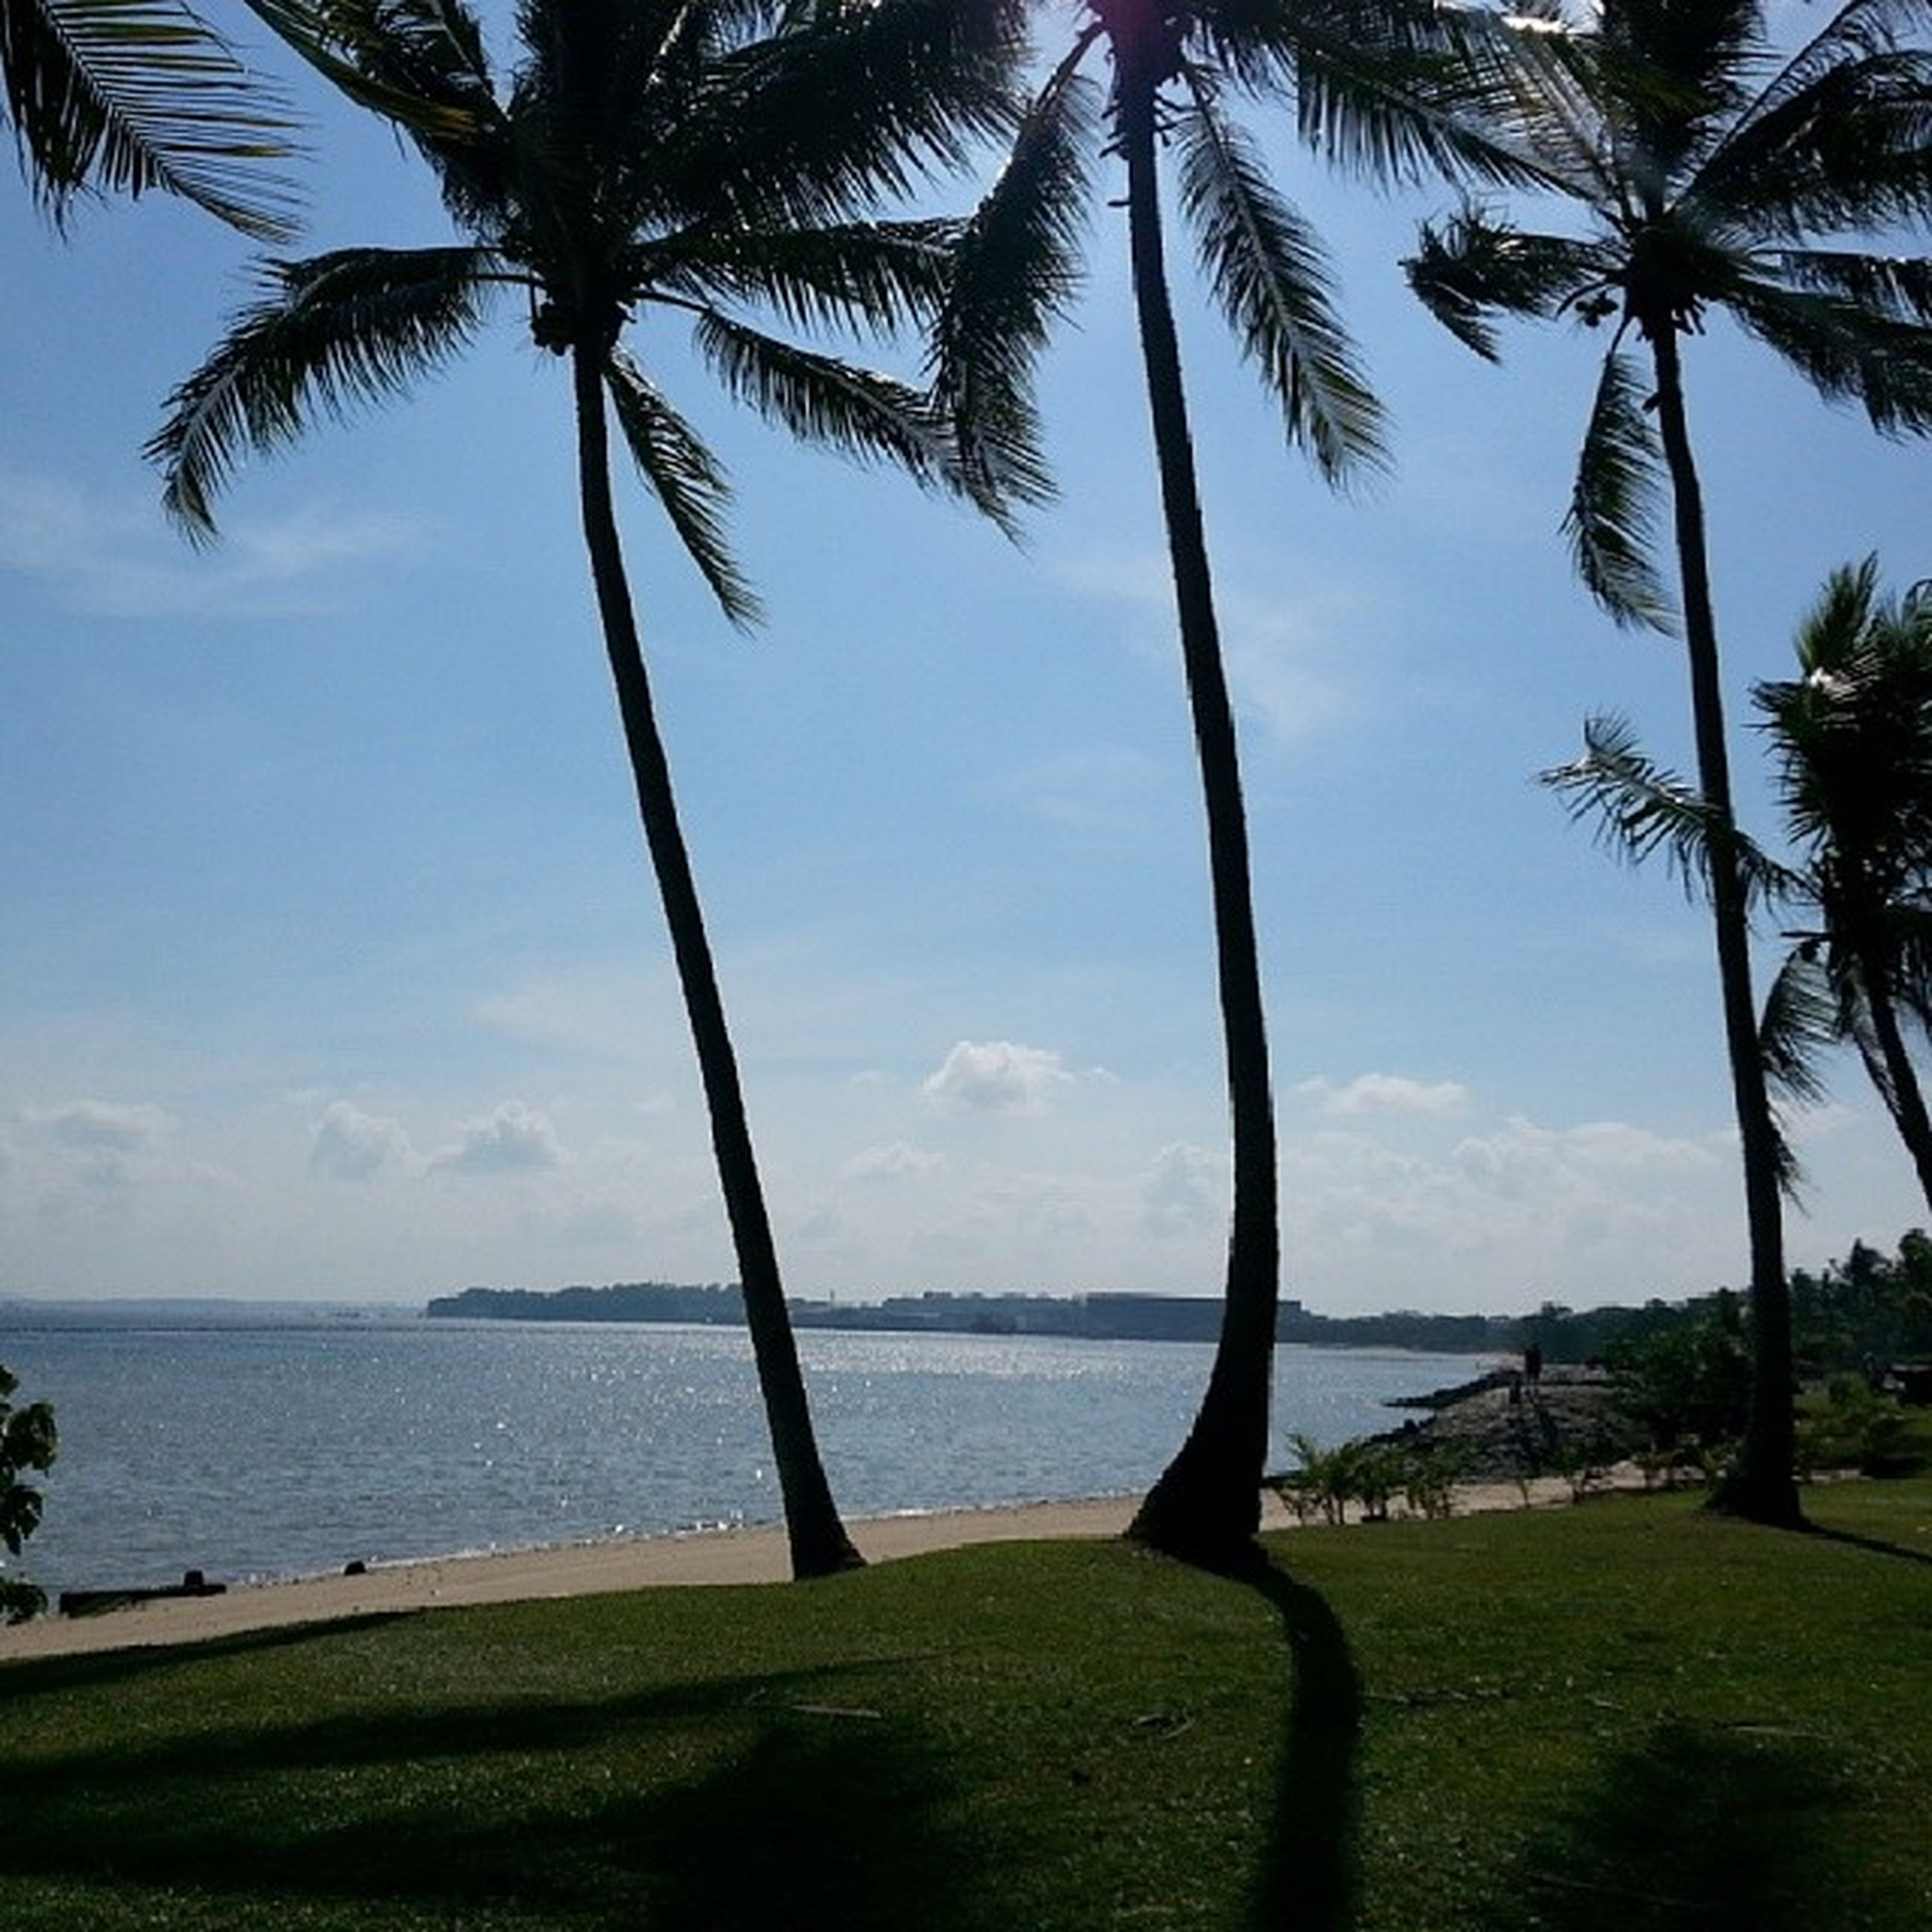 palm tree, tree, sea, water, sky, tranquility, tranquil scene, horizon over water, tree trunk, beach, scenics, beauty in nature, nature, growth, grass, shore, green color, incidental people, vacations, idyllic